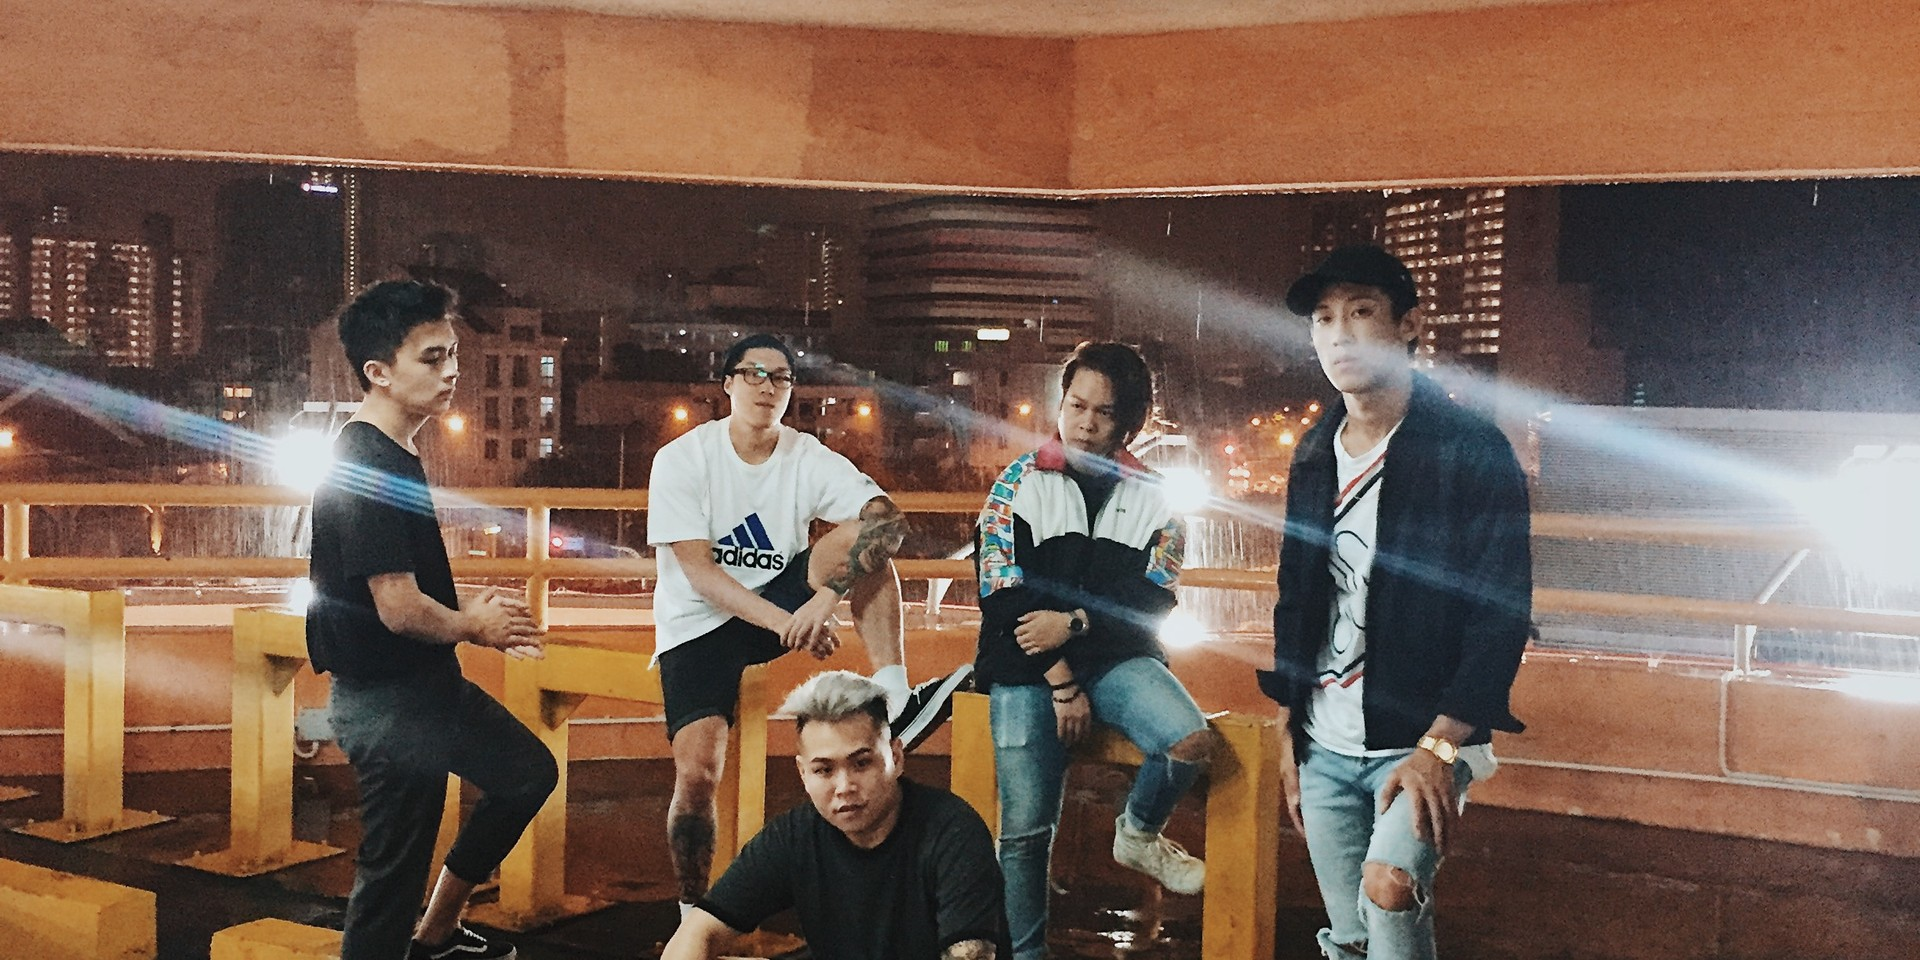 Villes announce The Other Side tour of Asia – Hong Kong, Taiwan, Singapore and Bangkok stops confirmed